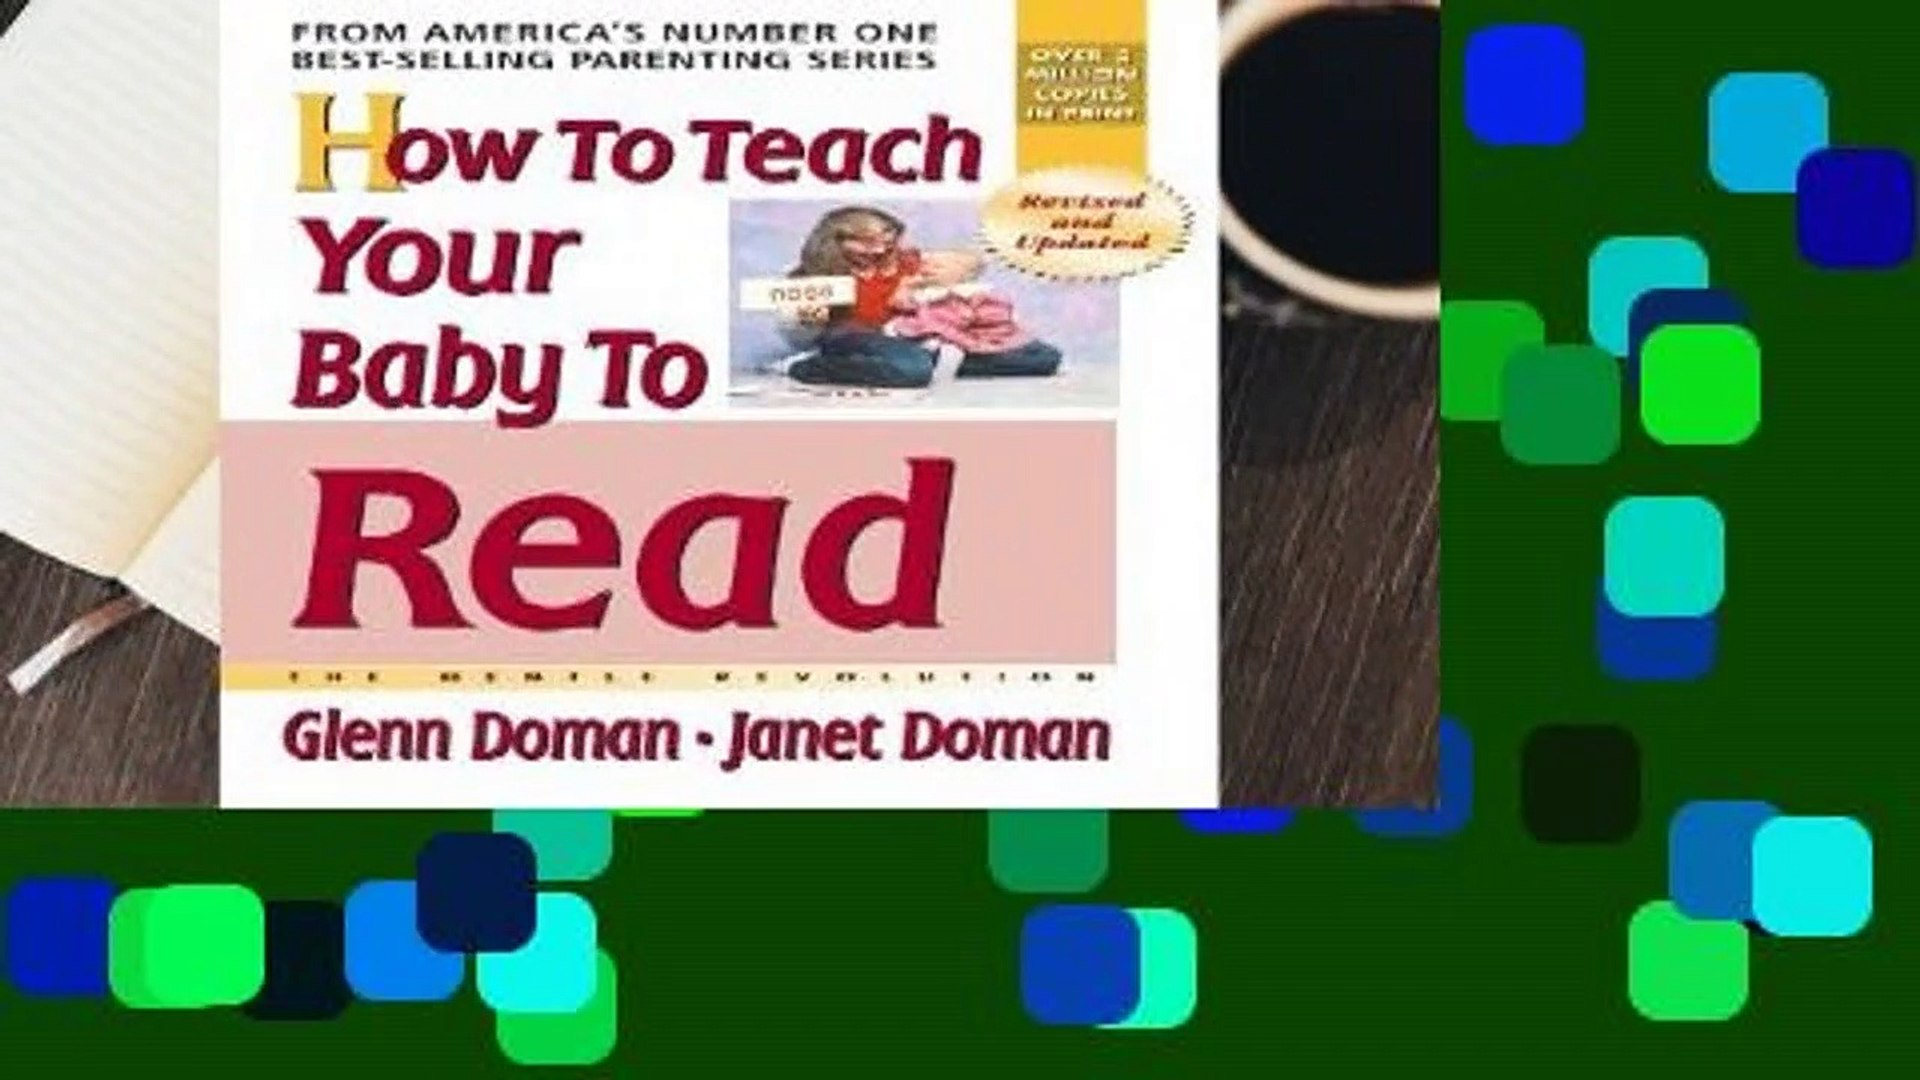 [FREE] How to Teach Your Baby to Read: The Gentle Revolution (How to Teach Your Baby to Read